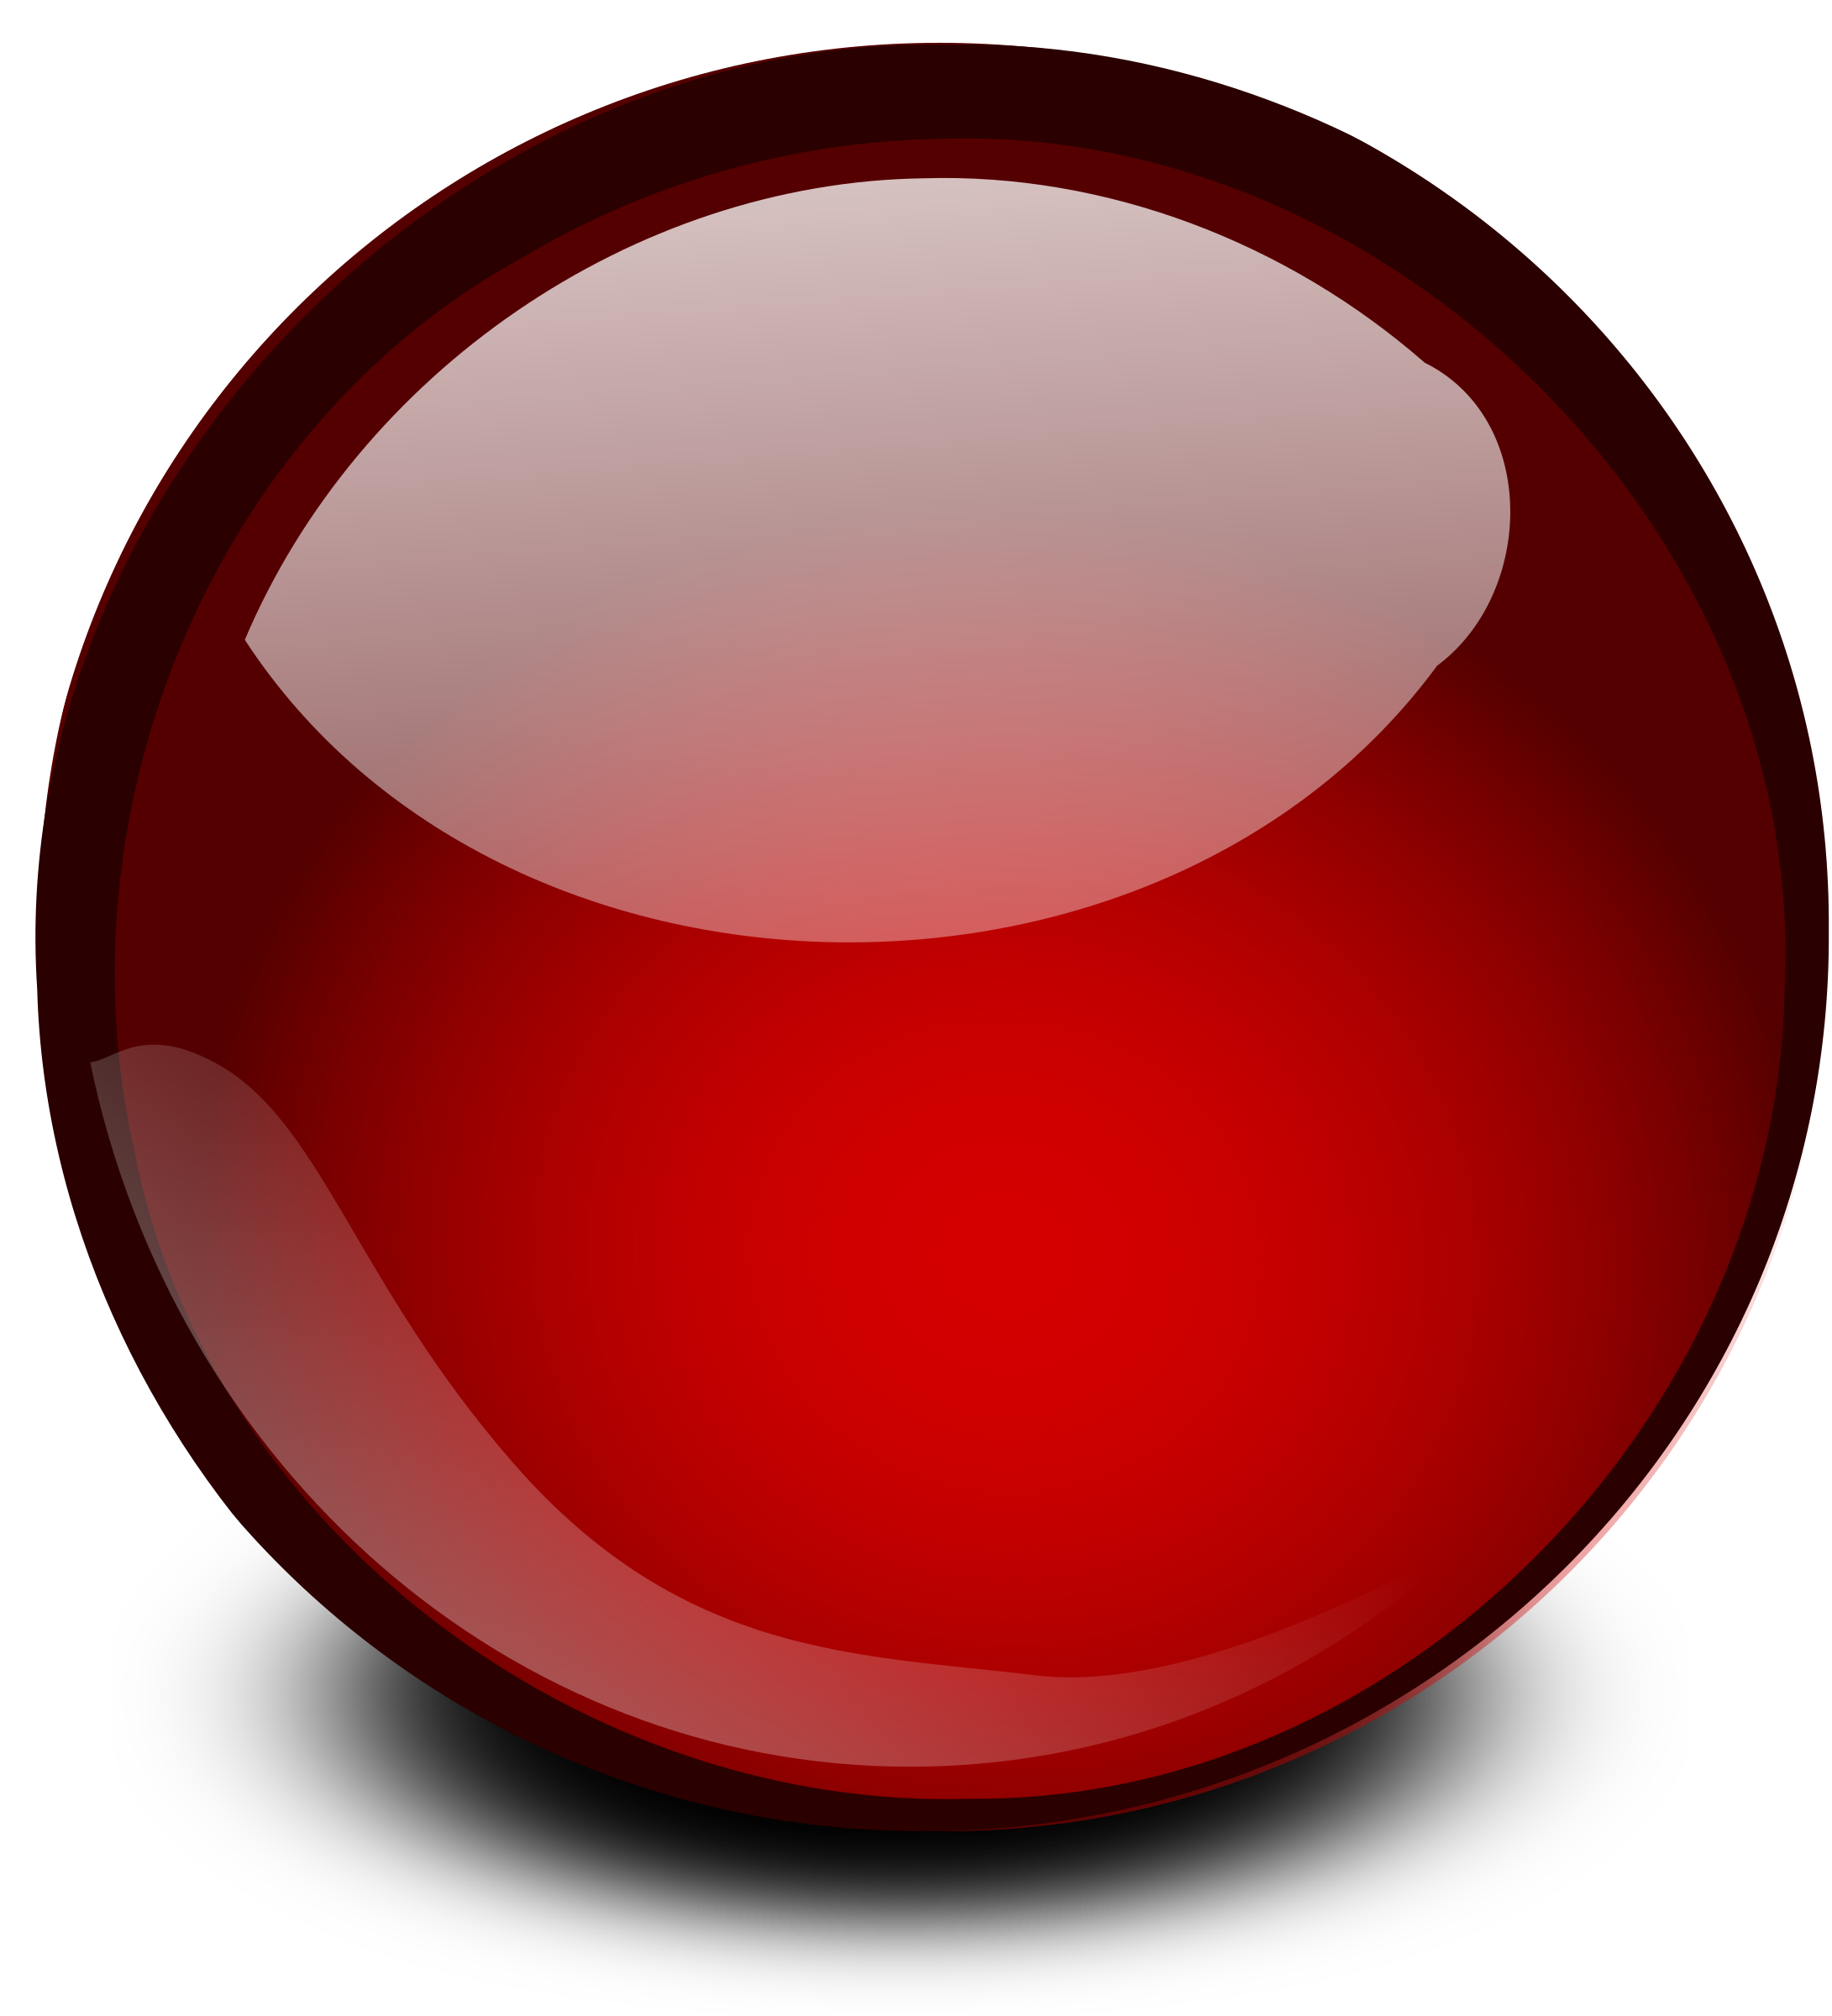 Marbles clipart red sphere. Free glossy orb cliparts